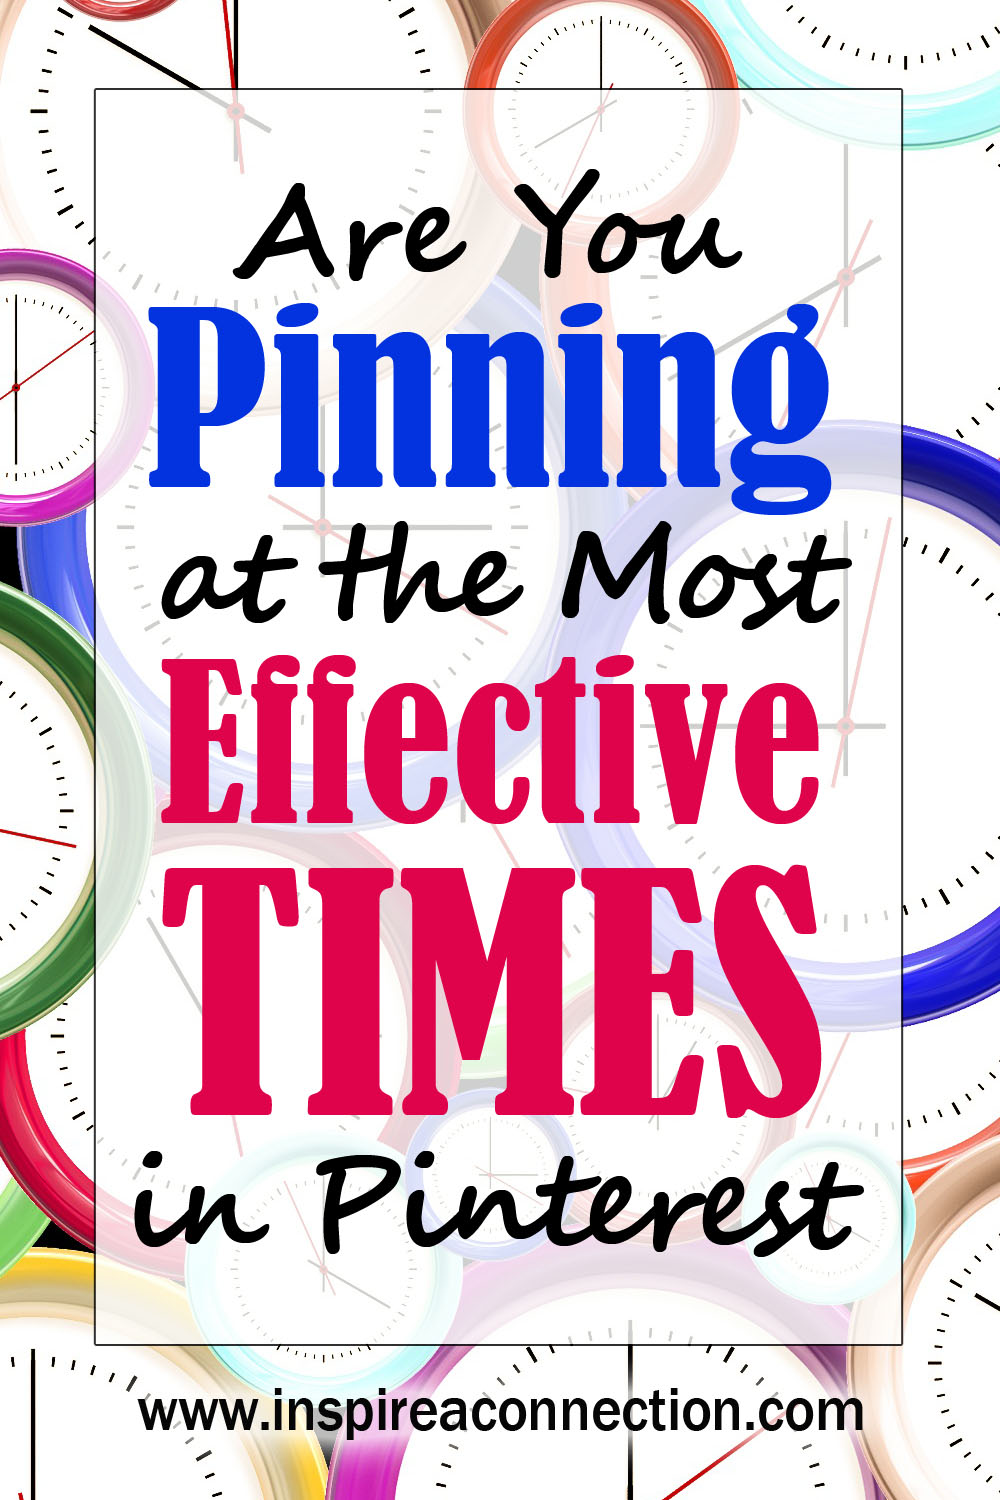 Are You Pinning at the Most Effective Times in Pinterest - Find out to determine which times are best. #pintereststrategies #pinteresttips #bloggingtips